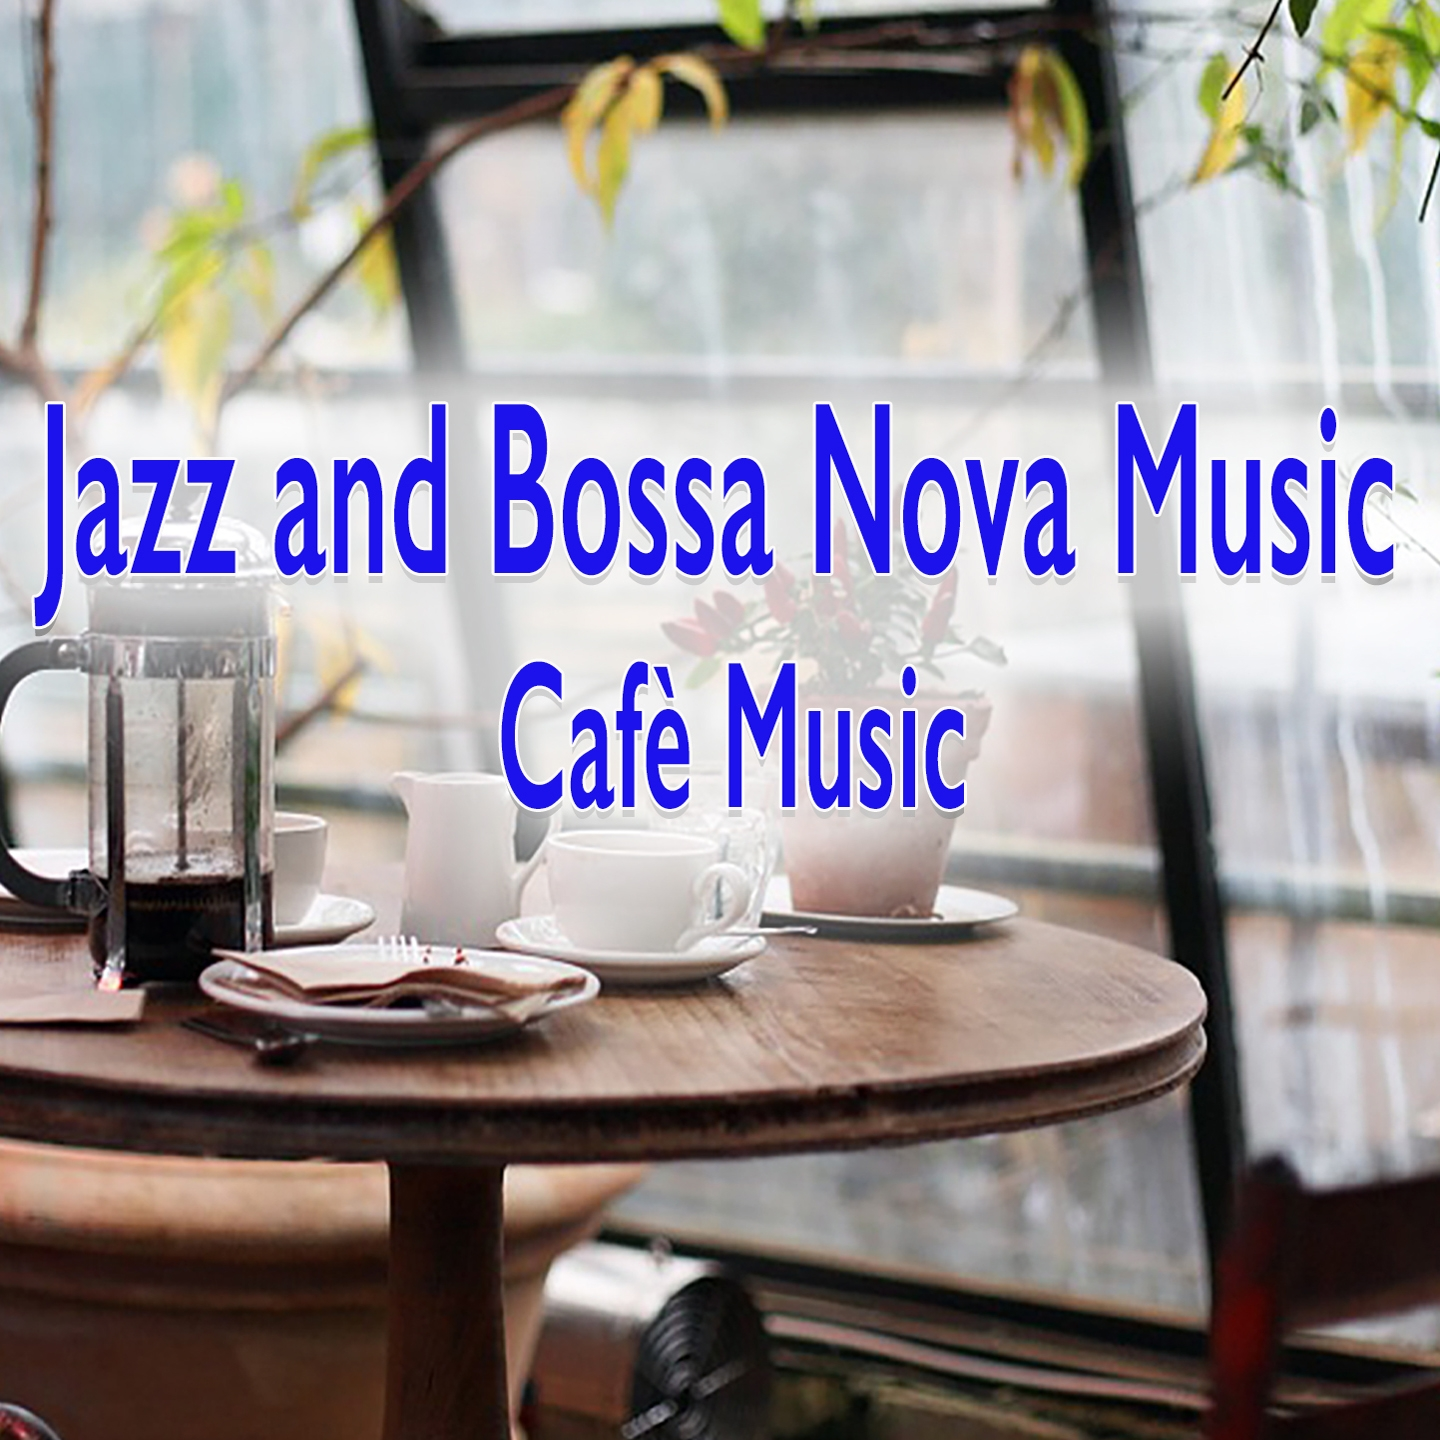 Jazz and Bossa Nova Music